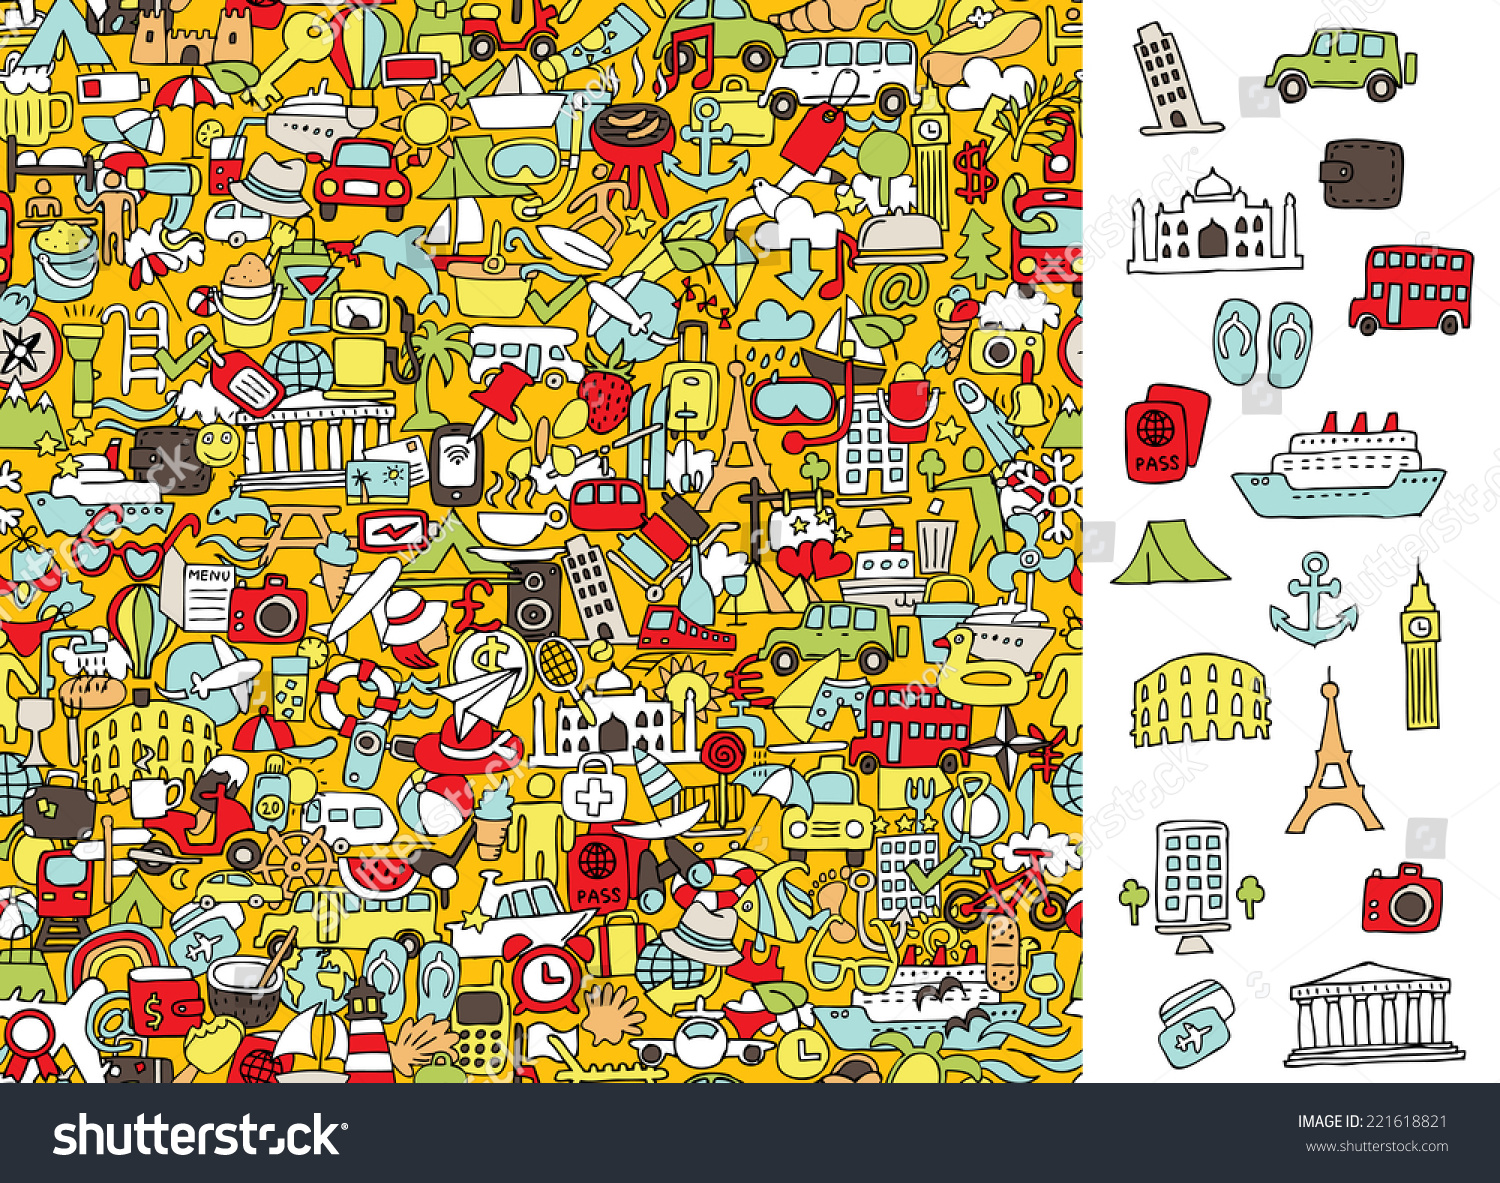 Find Right Travel Icons Visual Game Stock Vector 221618821 ...